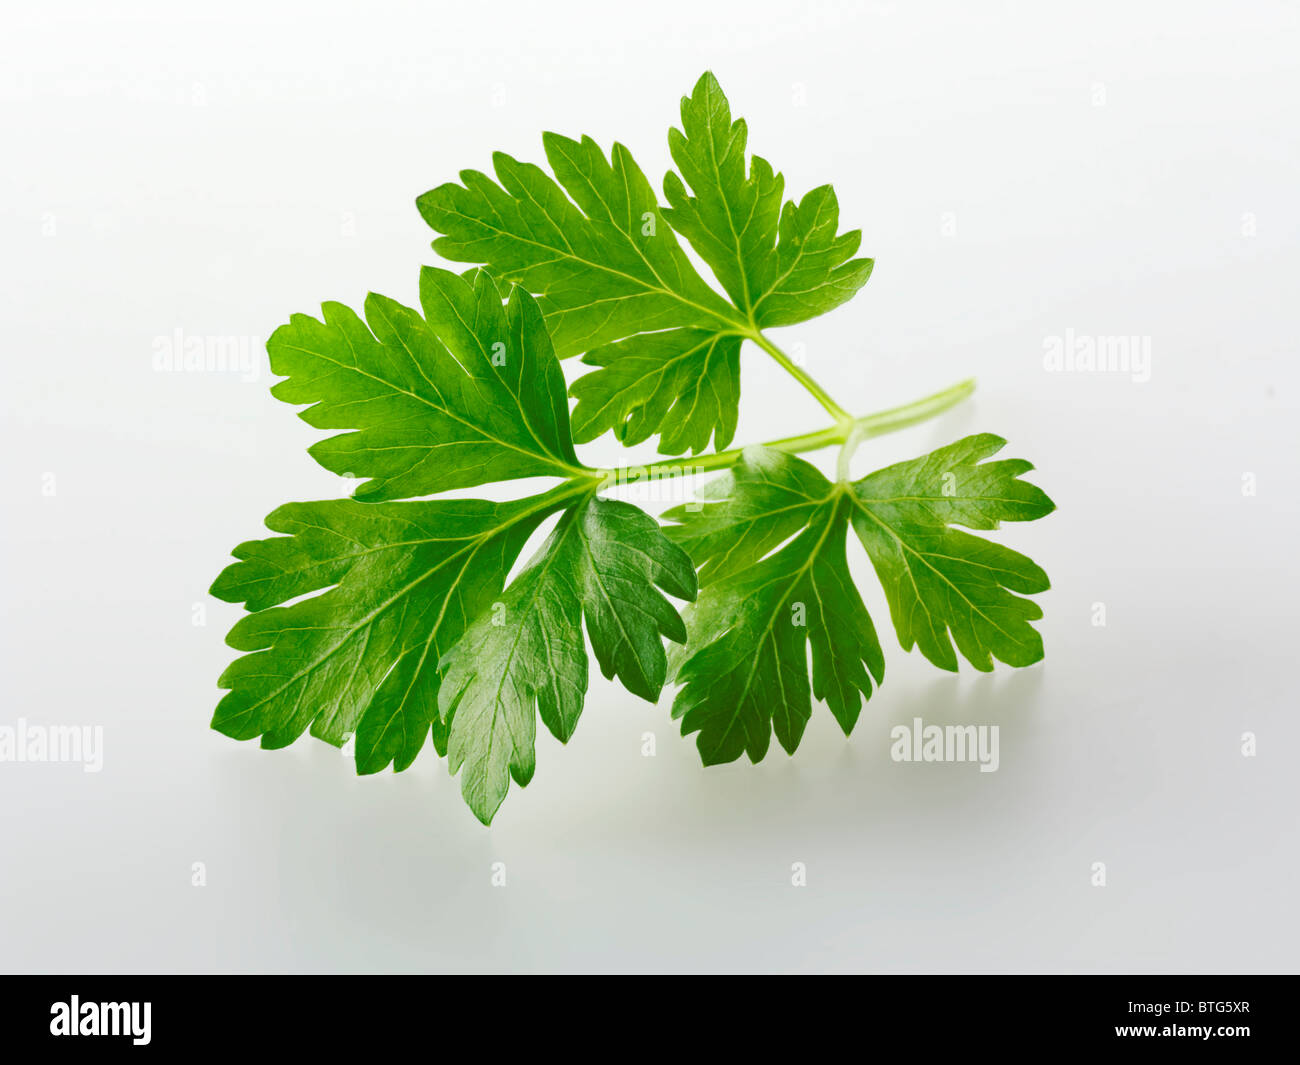 Top shot of Flat leaved parsley herb leaf against a white background for cut out - Stock Image